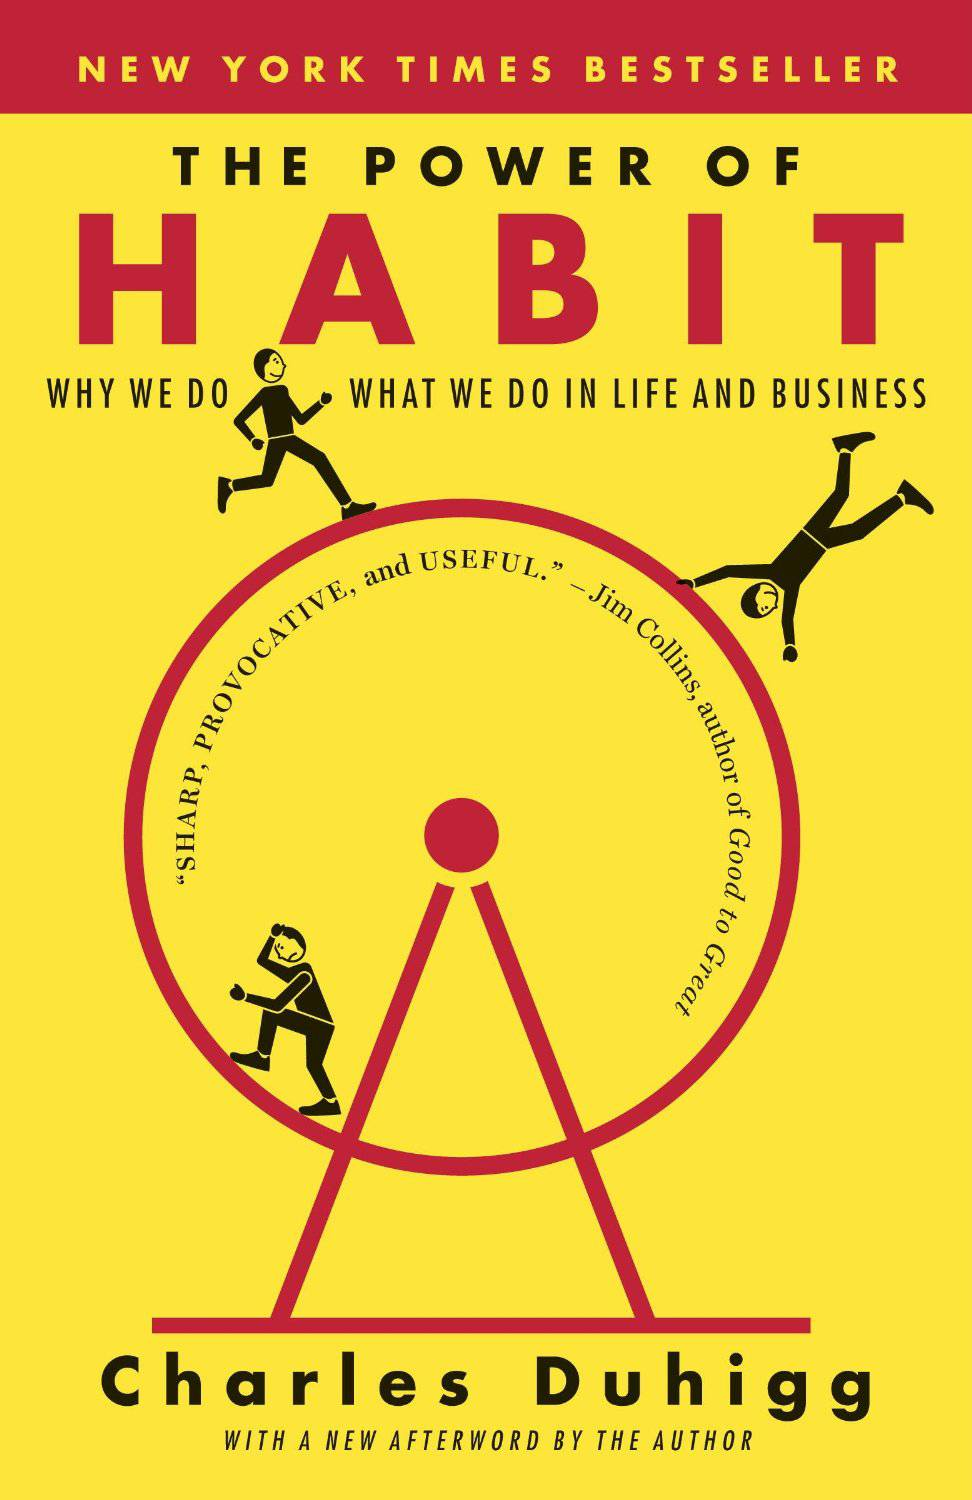 HABITS - The Power of Habit: Why We Do What We Do in Life and Business by Charles DuhiggGet a better understanding of how habits work and why we do things with this self-help habit book. Charles Duhigg covers topics like working out, losing weights and key concepts of productivity. In order to succeed we must train our minds to improve at increased levels everyday.(Photo: Random House Trade Paperbacks)